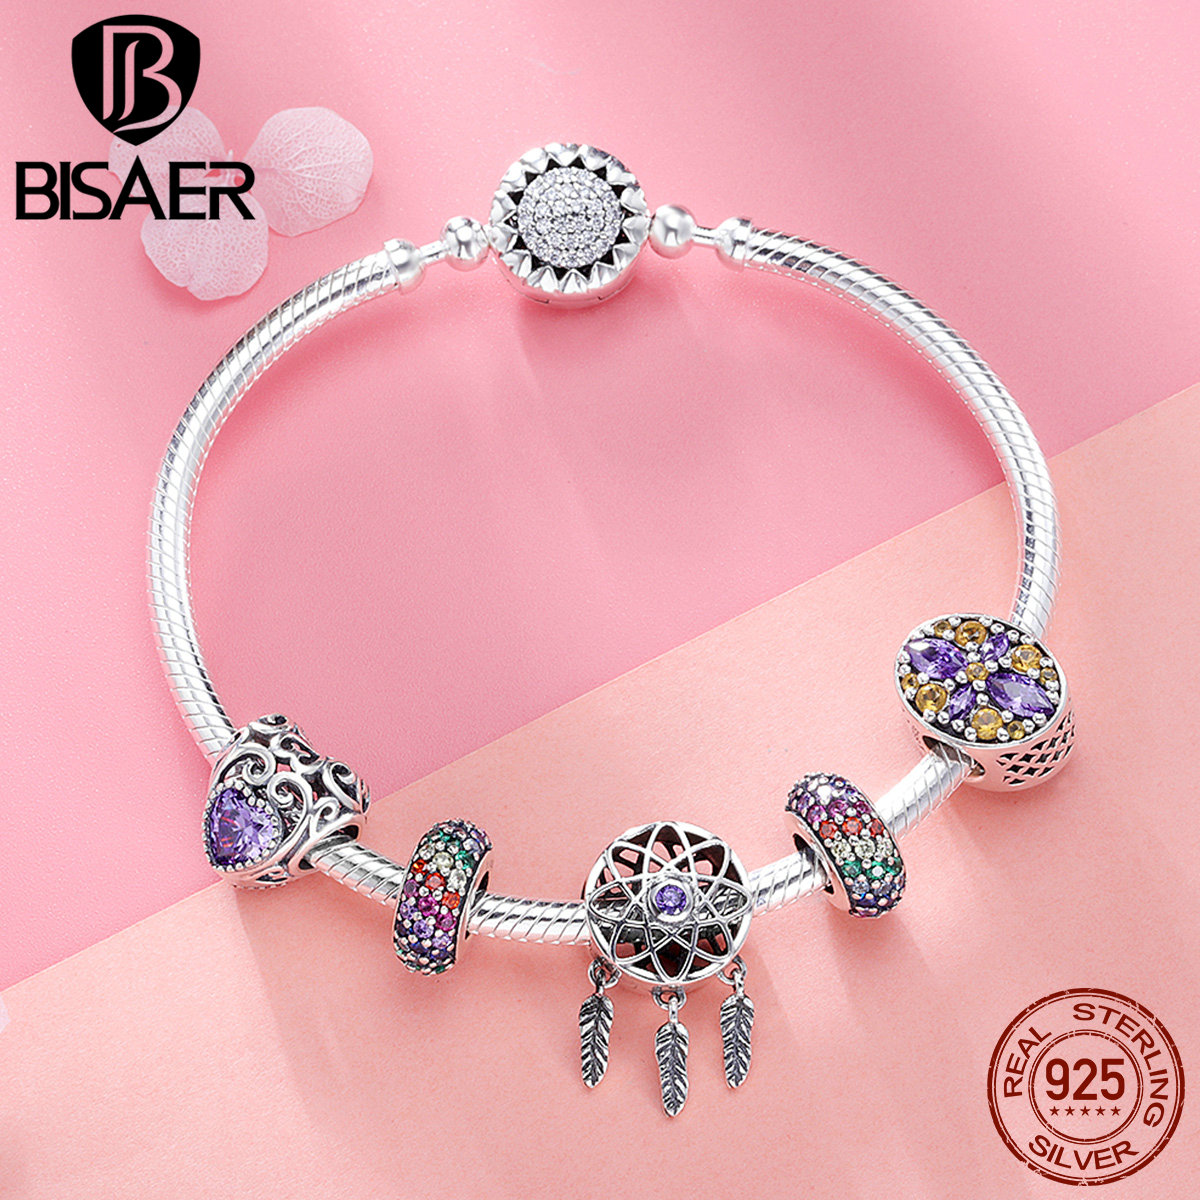 BISAER 6Pcs 925 Sterling Silver Dream Catcher Tassels Bohemia Style Original Brand Charm Bracelet For Women Wedding Gift GXB809